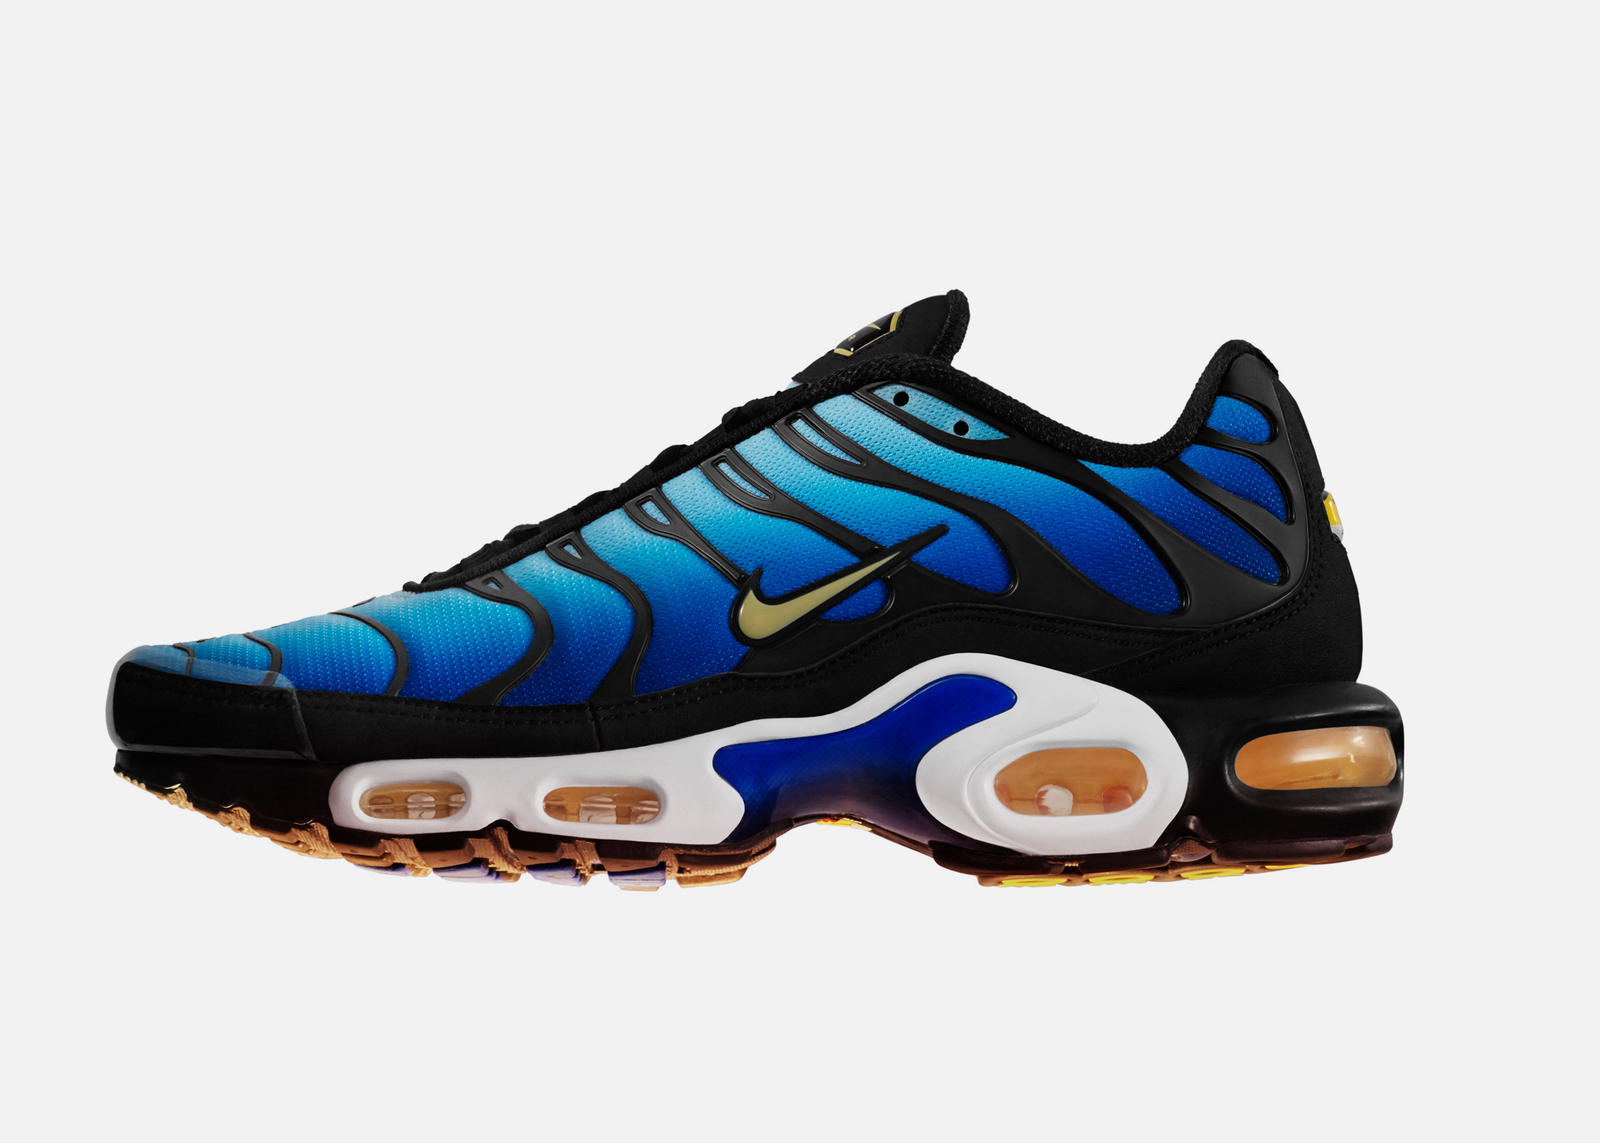 online retailer 0f3ff 2b594 The Untold Story of the Nike Air Max Plus 20